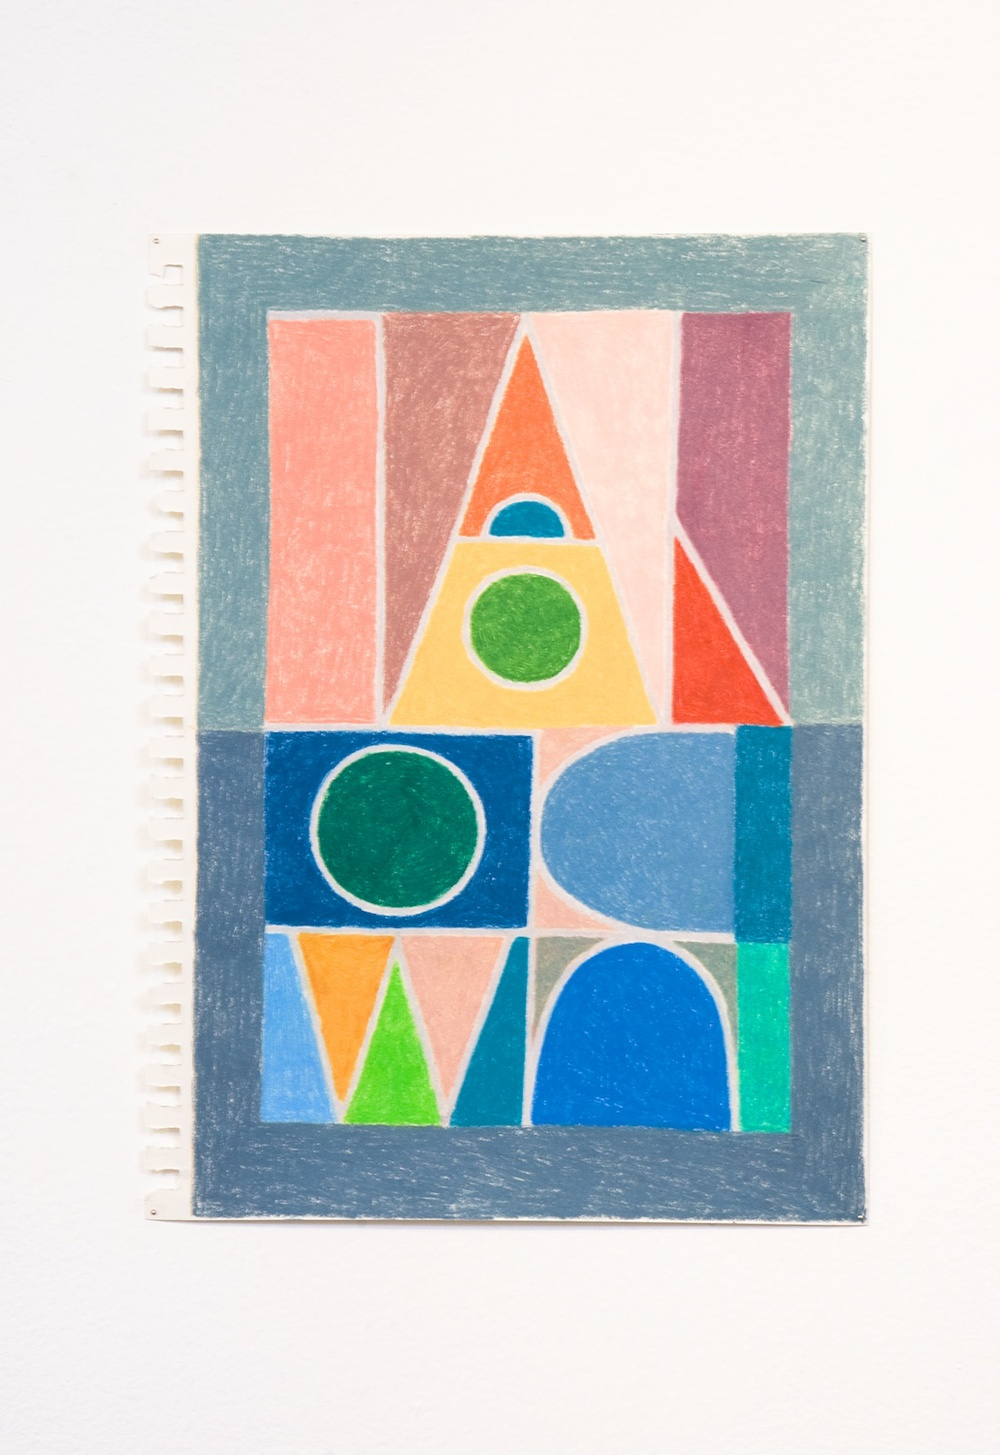 "Elijah Burgher Kaspar Hauser 2009 Colored pencil on paper 12"" x 8"" EB002"